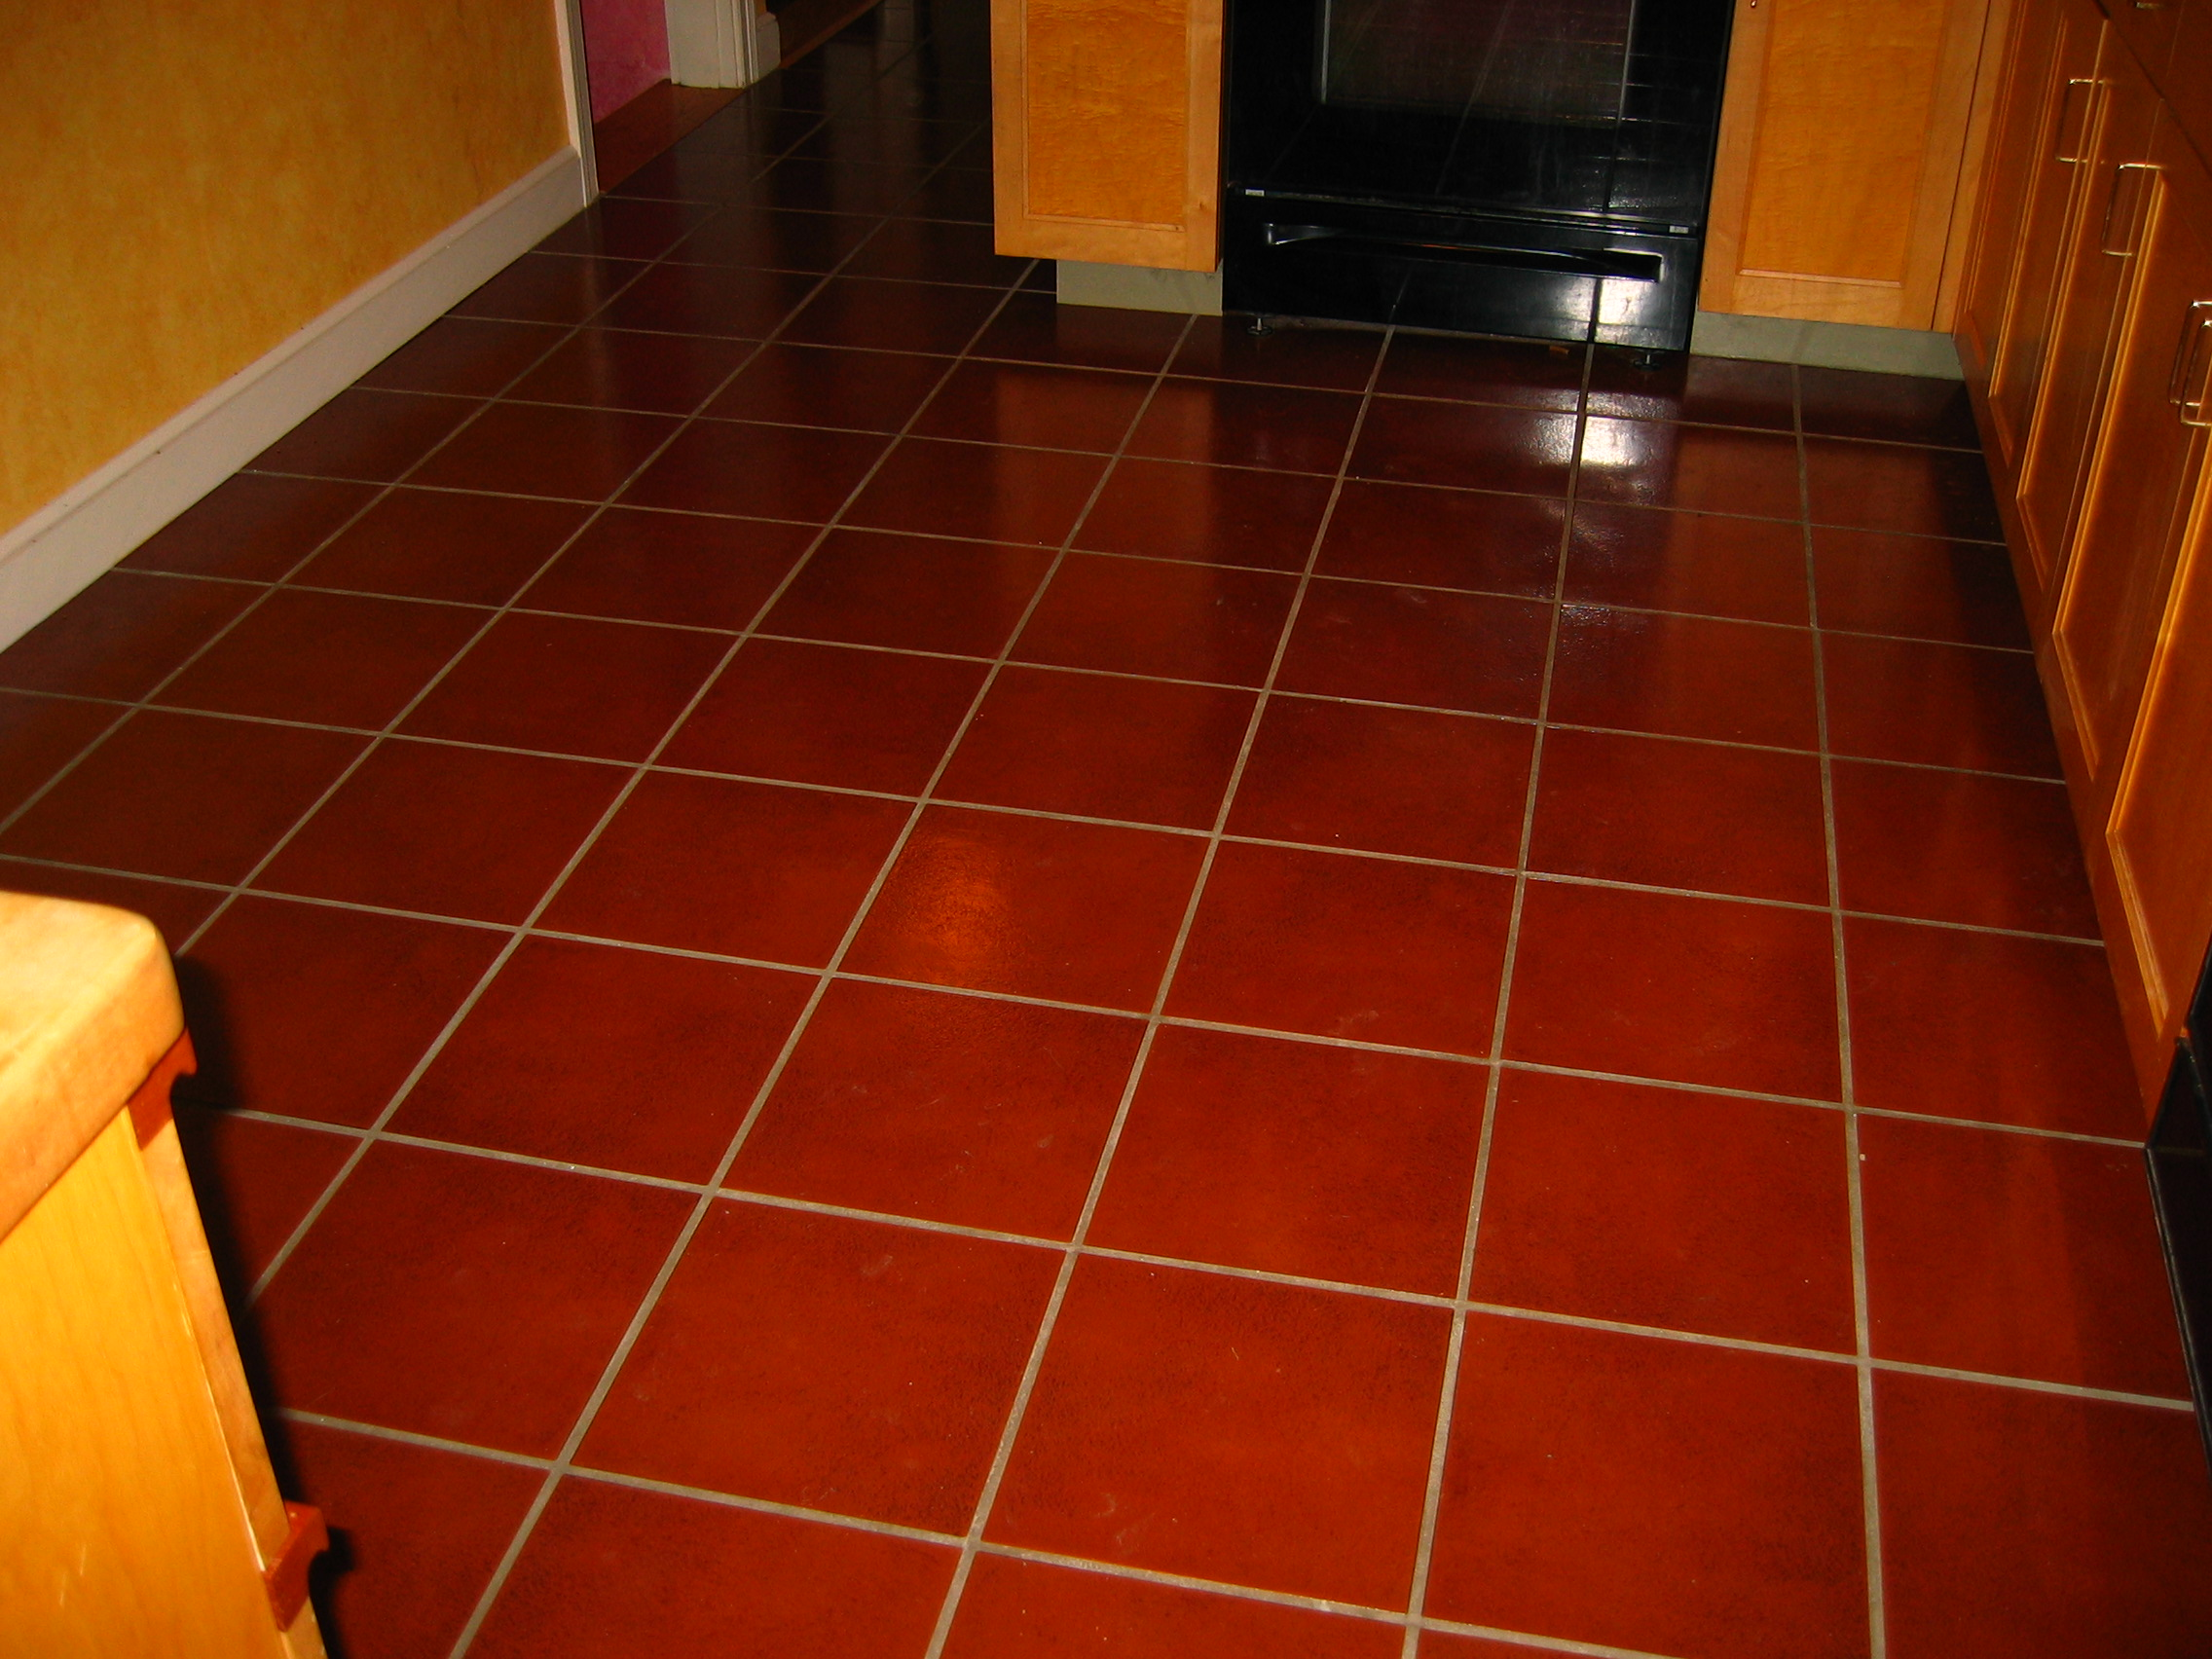 Td hall associates glazed ceramic tile on a kitchen floor tile installed over plywood underlayment over 1 inch thick pine subflooring dailygadgetfo Images